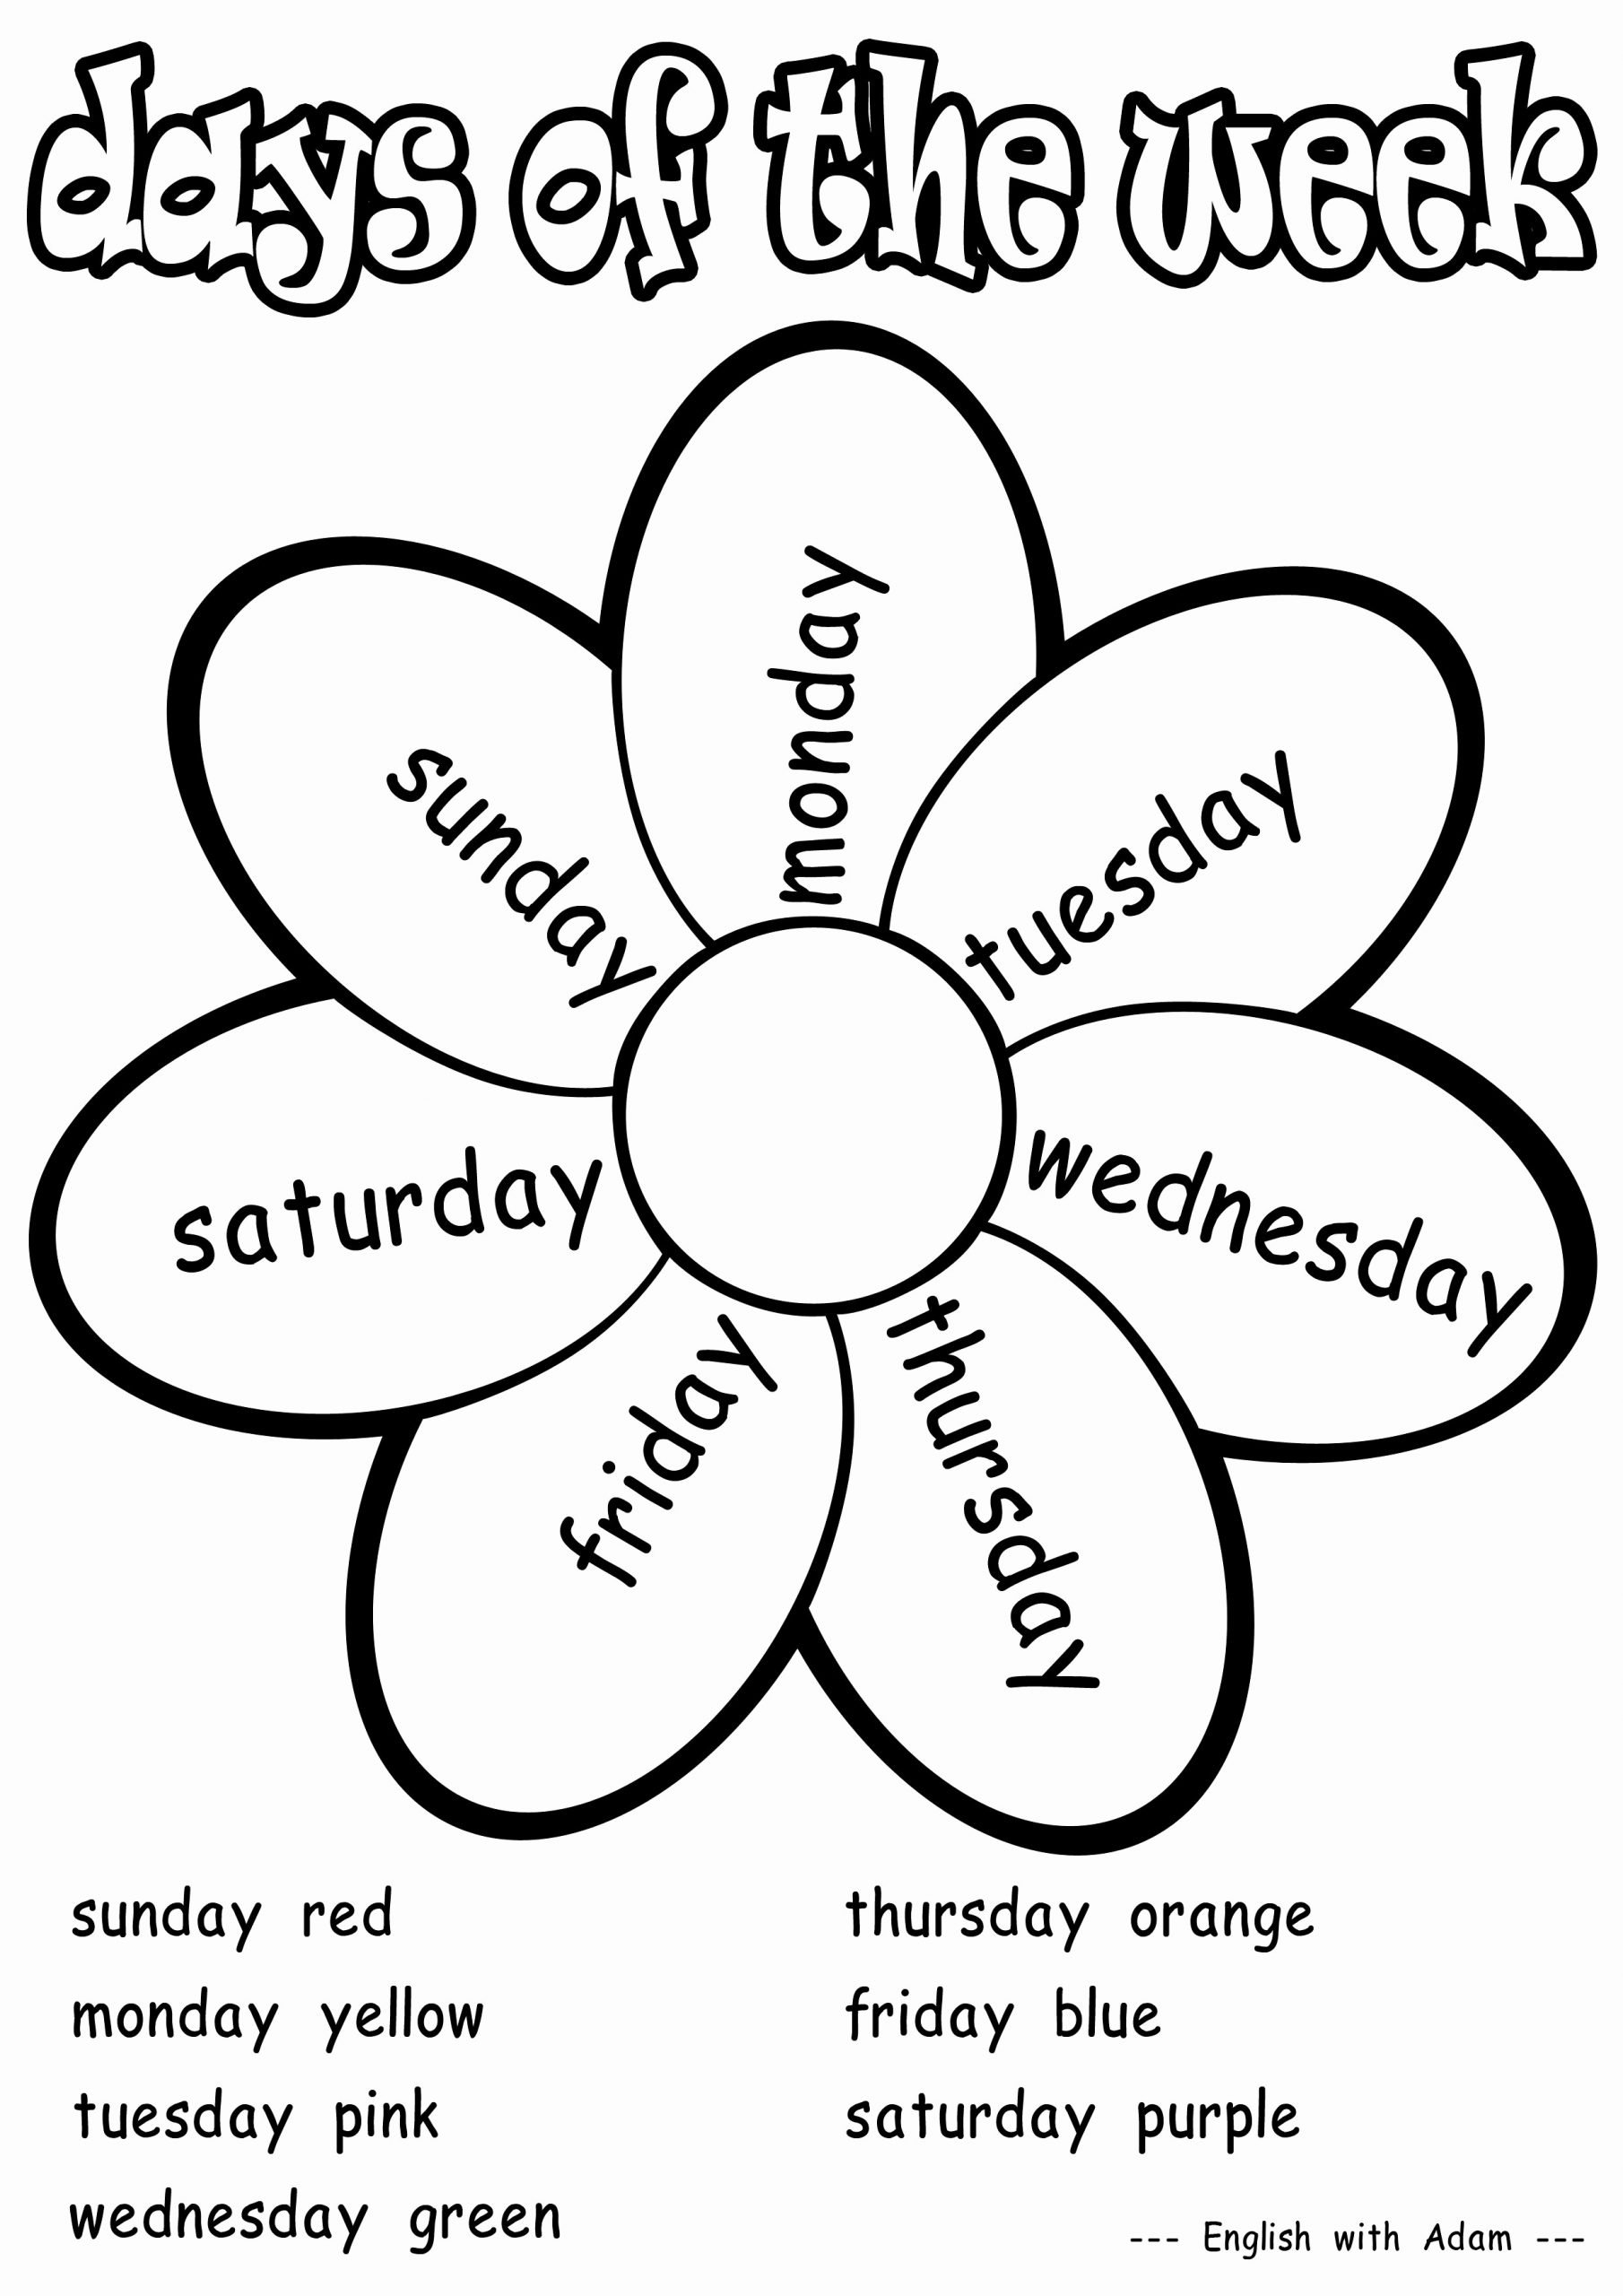 Days Of the Week Worksheets for Preschoolers Fresh Coloring Activities for Grade 1 New Lily Chuang Lilychuang